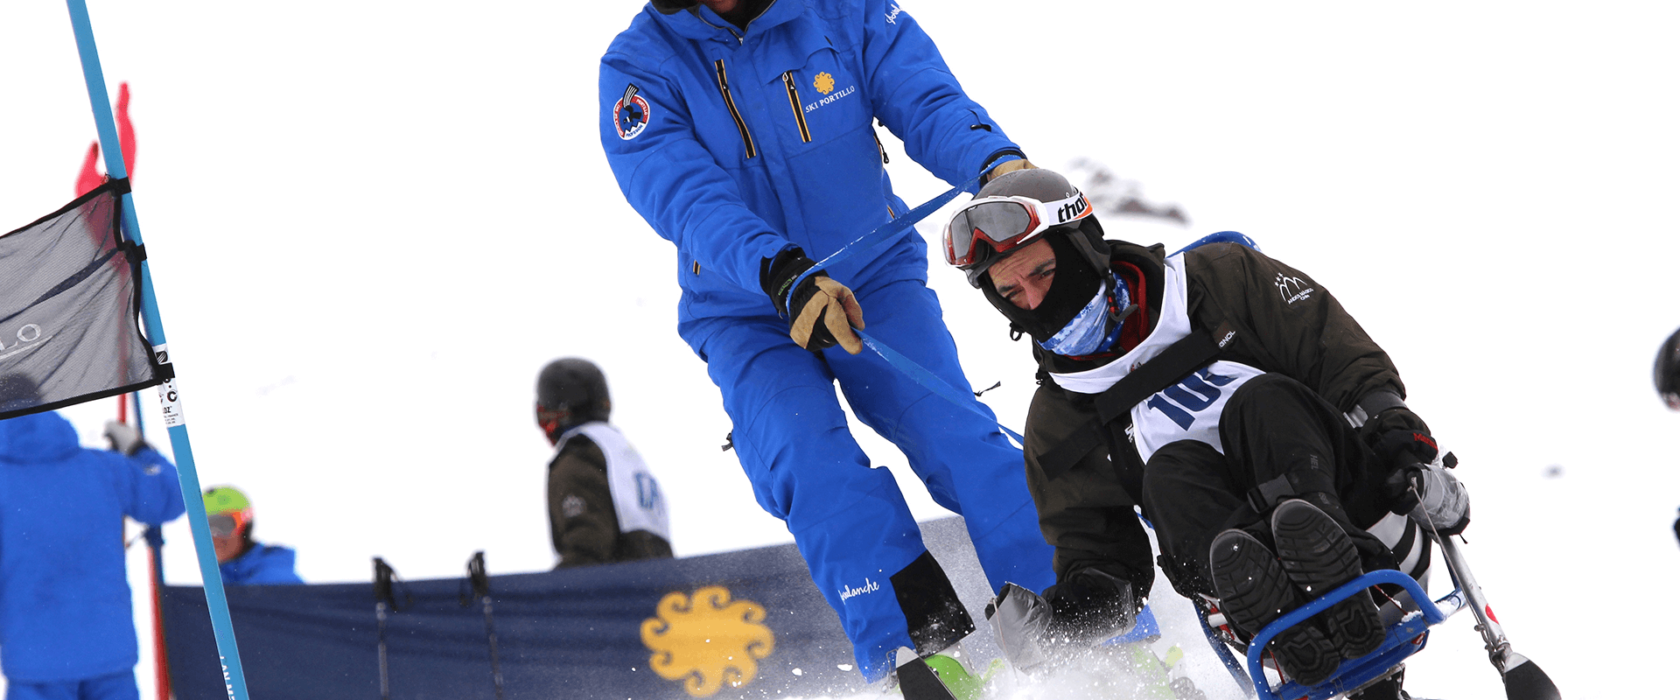 Adaptive Skiing Lessons